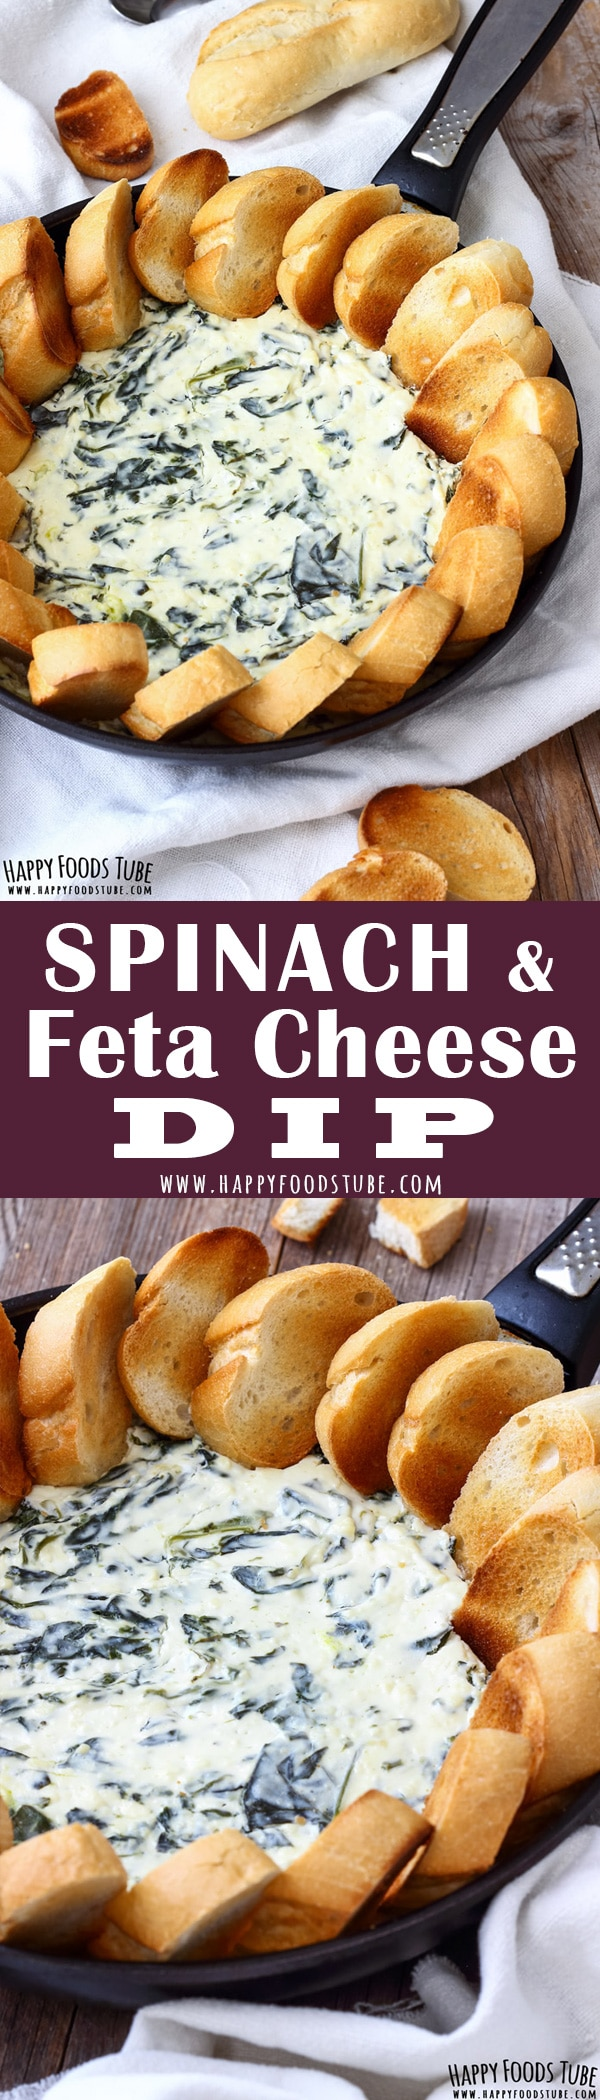 If you love entertaining at home then this warm spinach and feta dip should be on your party menu. Spinach, garlic, cream cheese and yogurt are combined together, heated up in the oven and served with toasted baguettes. #spinach #feta #appetizers #partyfood #baked #makeahead #cheese #dip #recipe #fingerfood